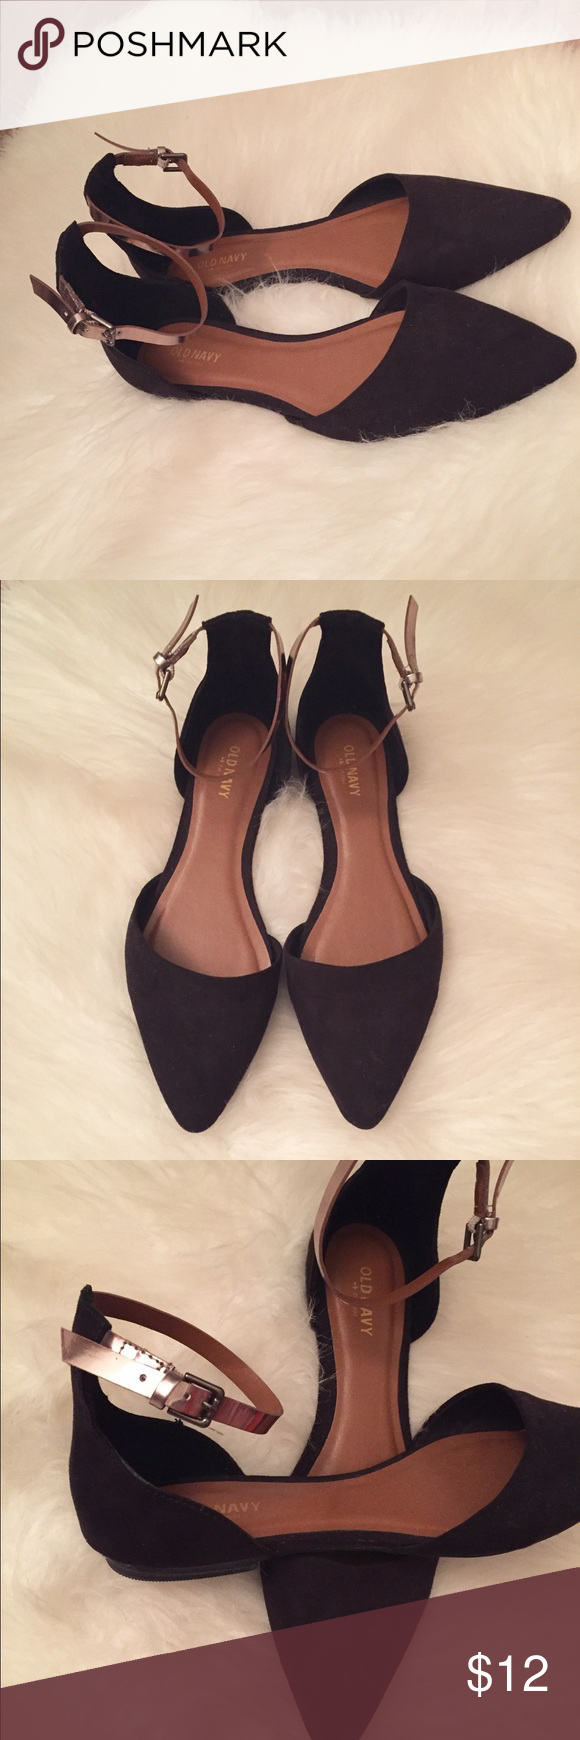 Ankle Strapped Flats These ankle strapped suede flats will add some pop to your outfit. They feature a silver ankle strap to add some glamour. They are perfect with jeans or a beautiful dress. They have only been worn once. In great condition Old Navy Shoes Flats & Loafers